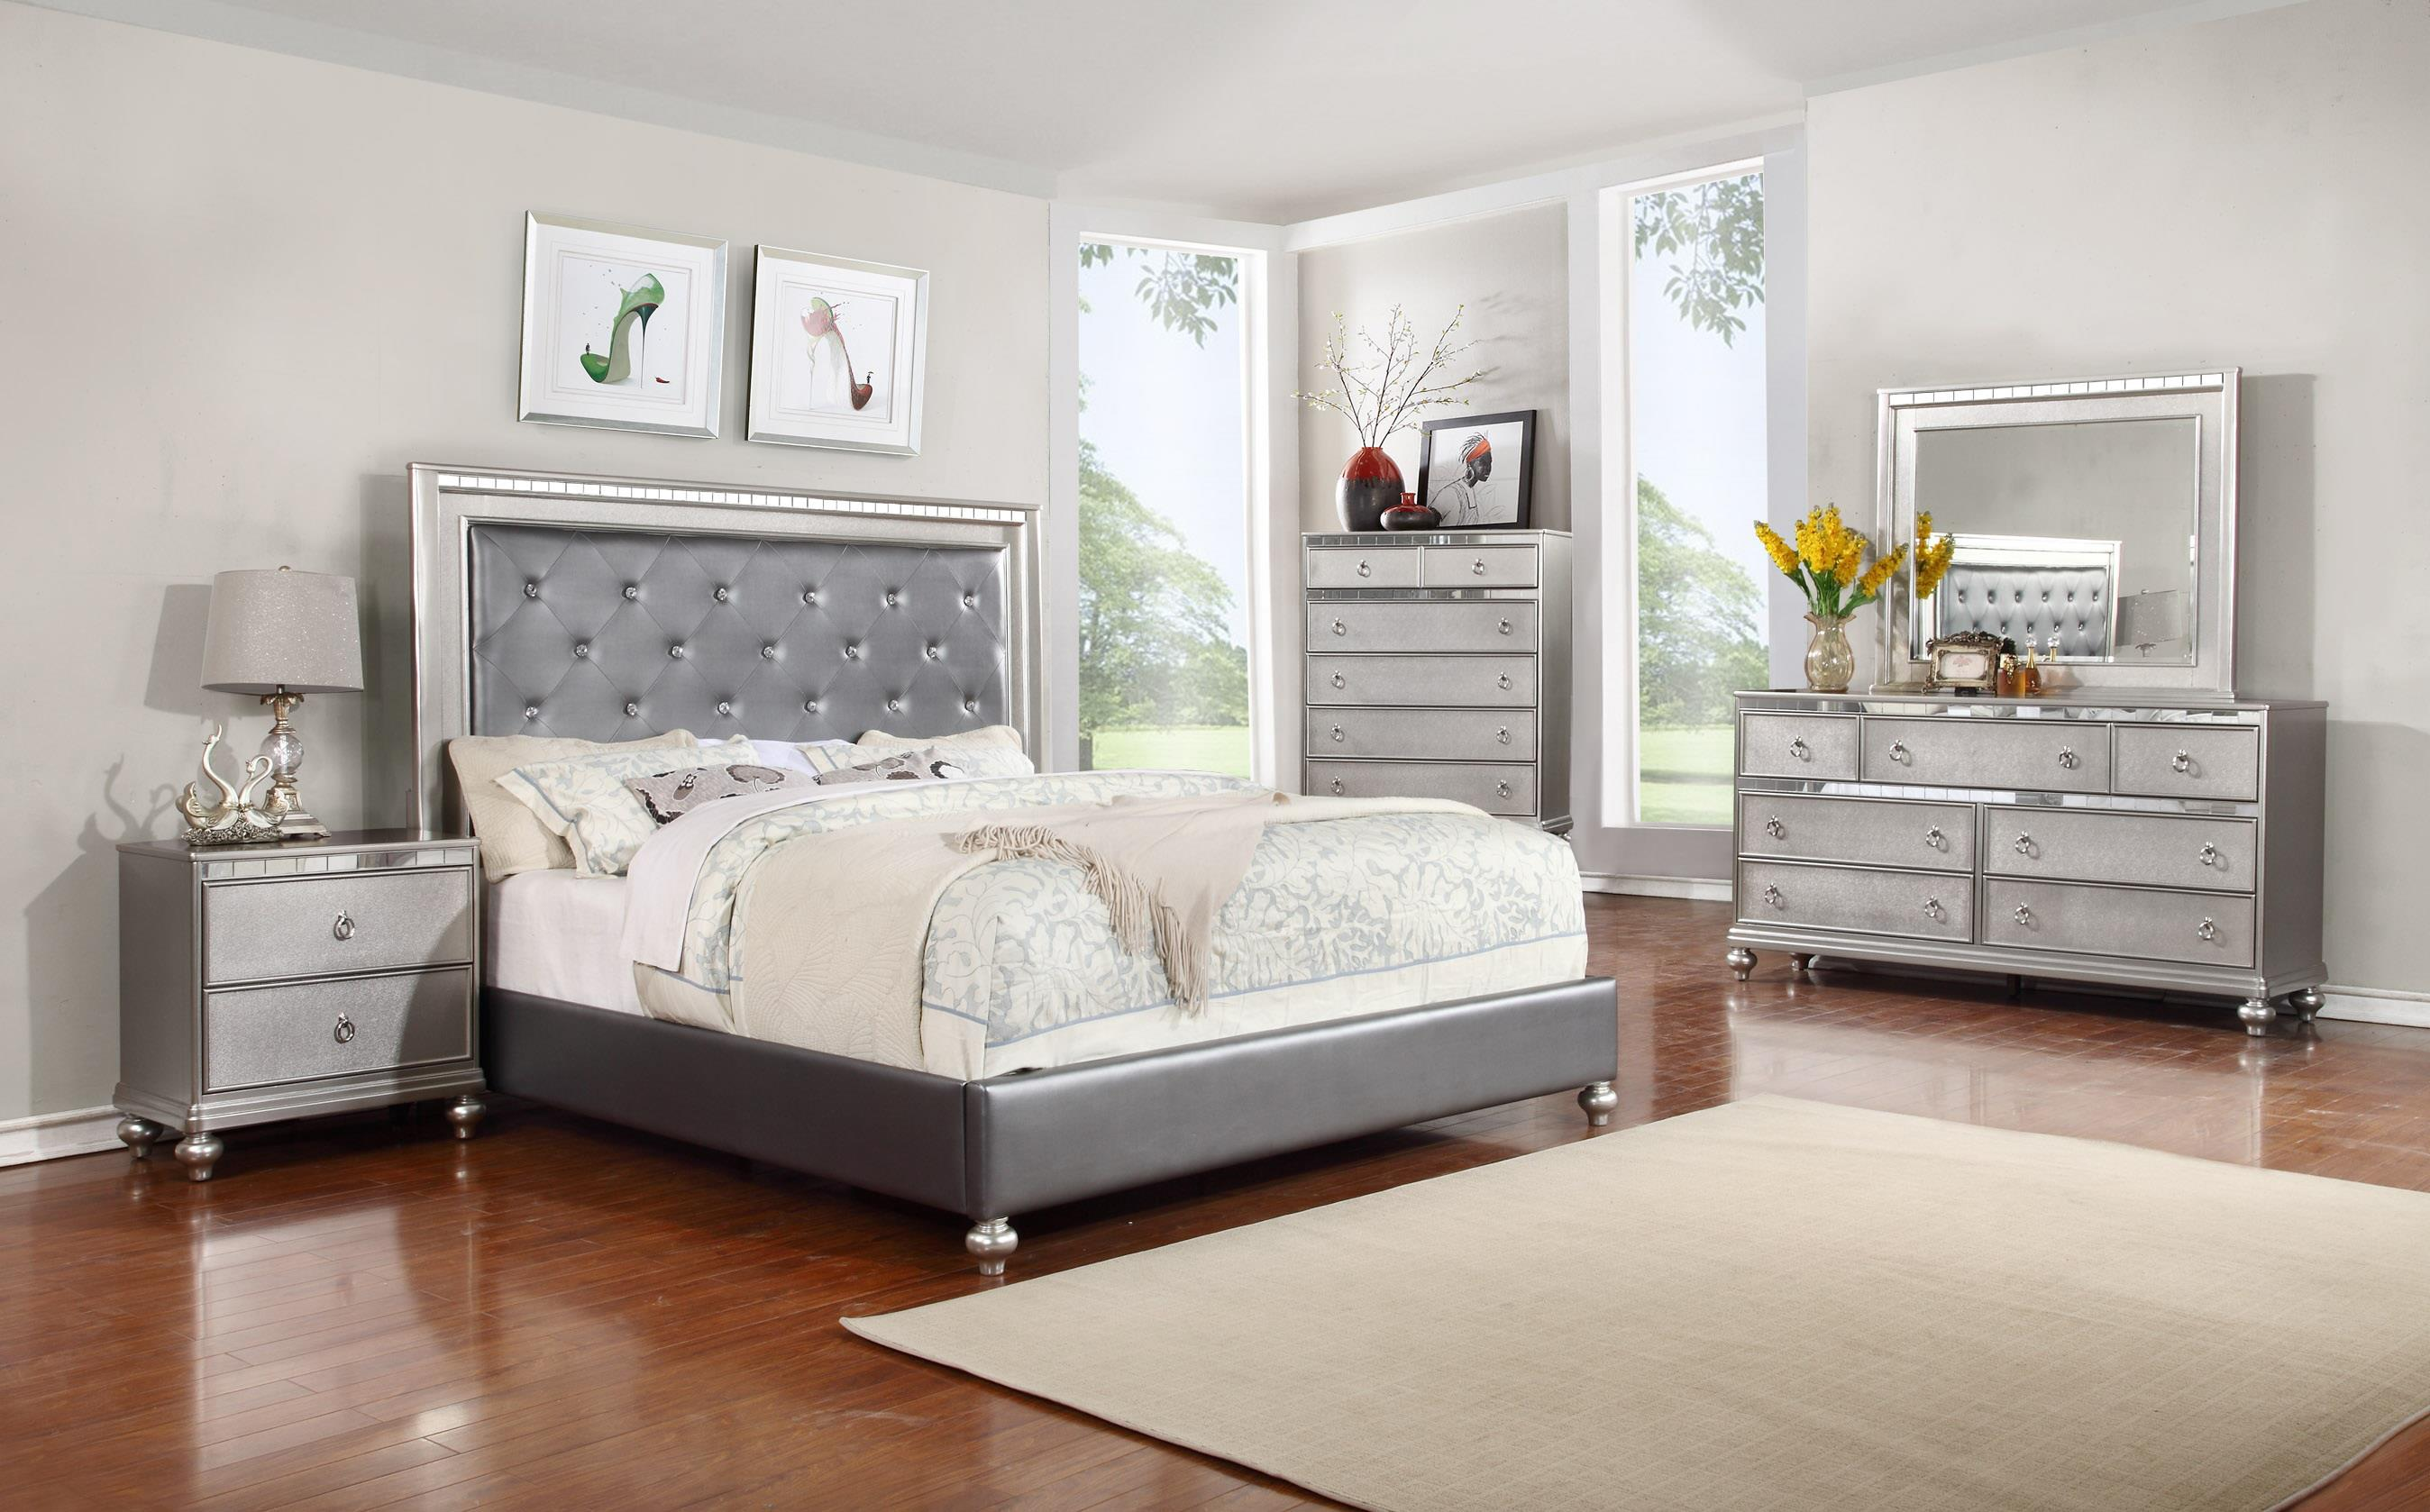 Glam 5PC Queen Bedroom Set  Rotmans  Bedroom Group